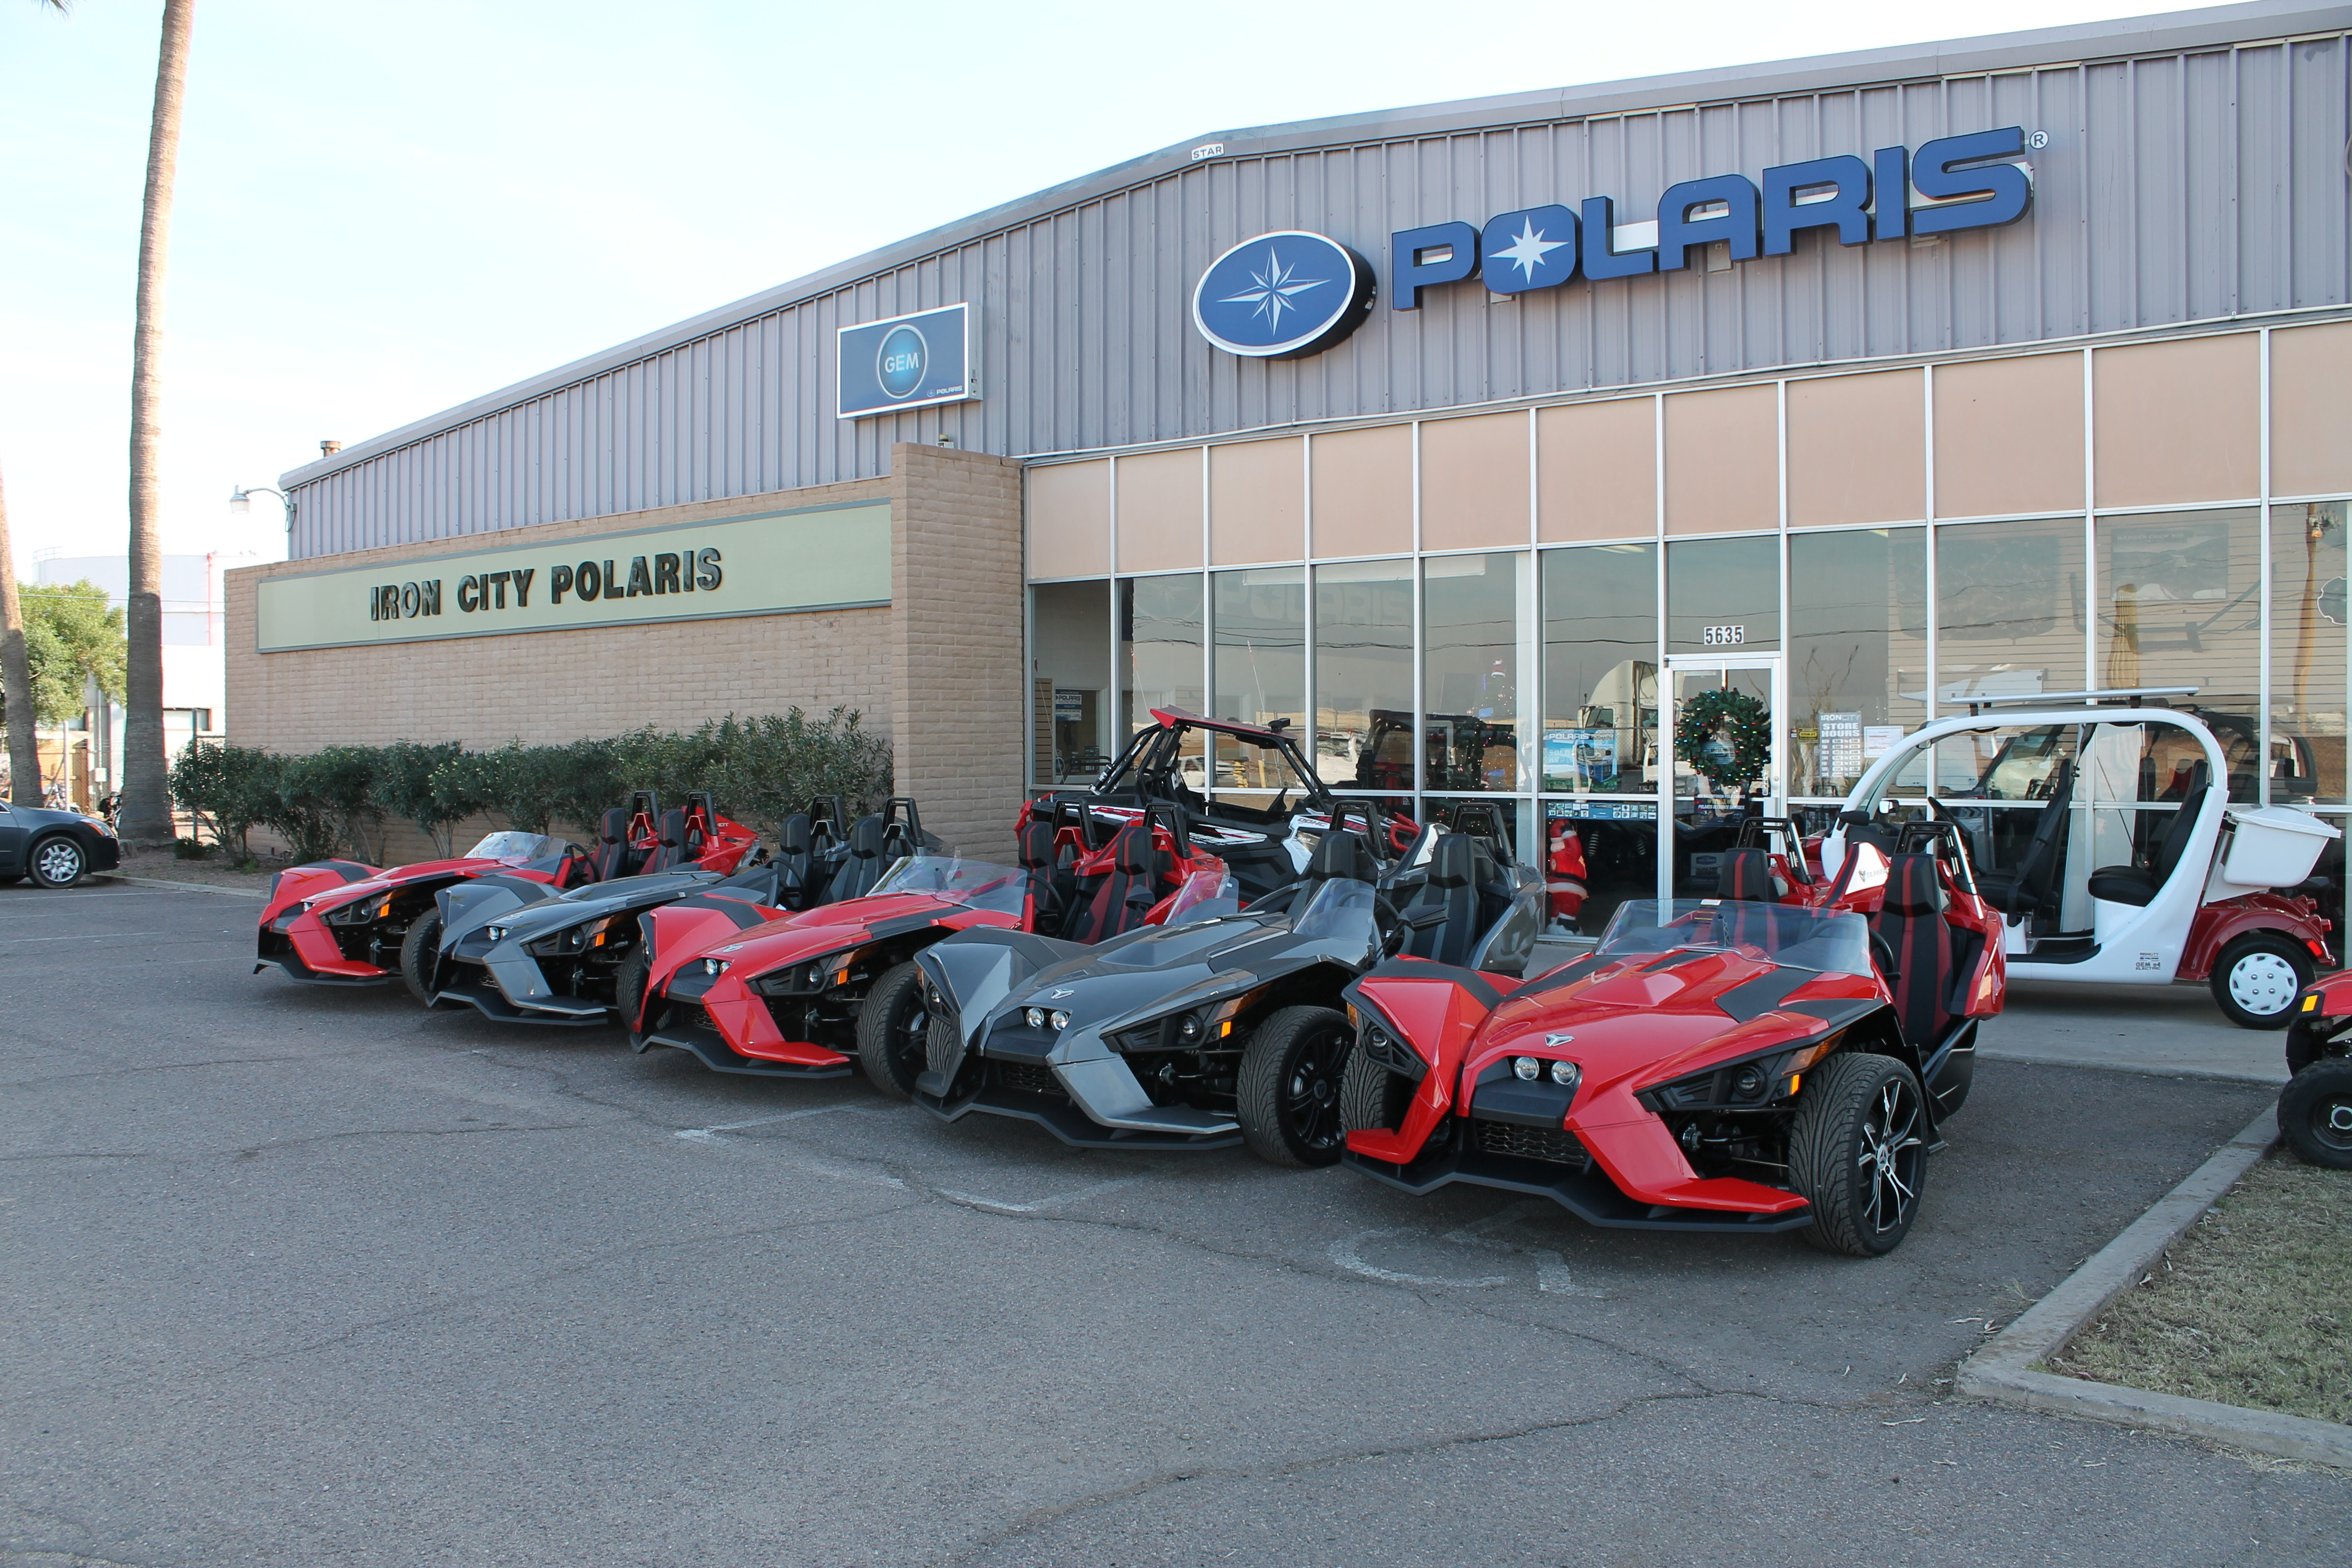 Auto Dealership For Sale Arizona: My Arizona Dealer Has 4 Slingshots For Sale Today